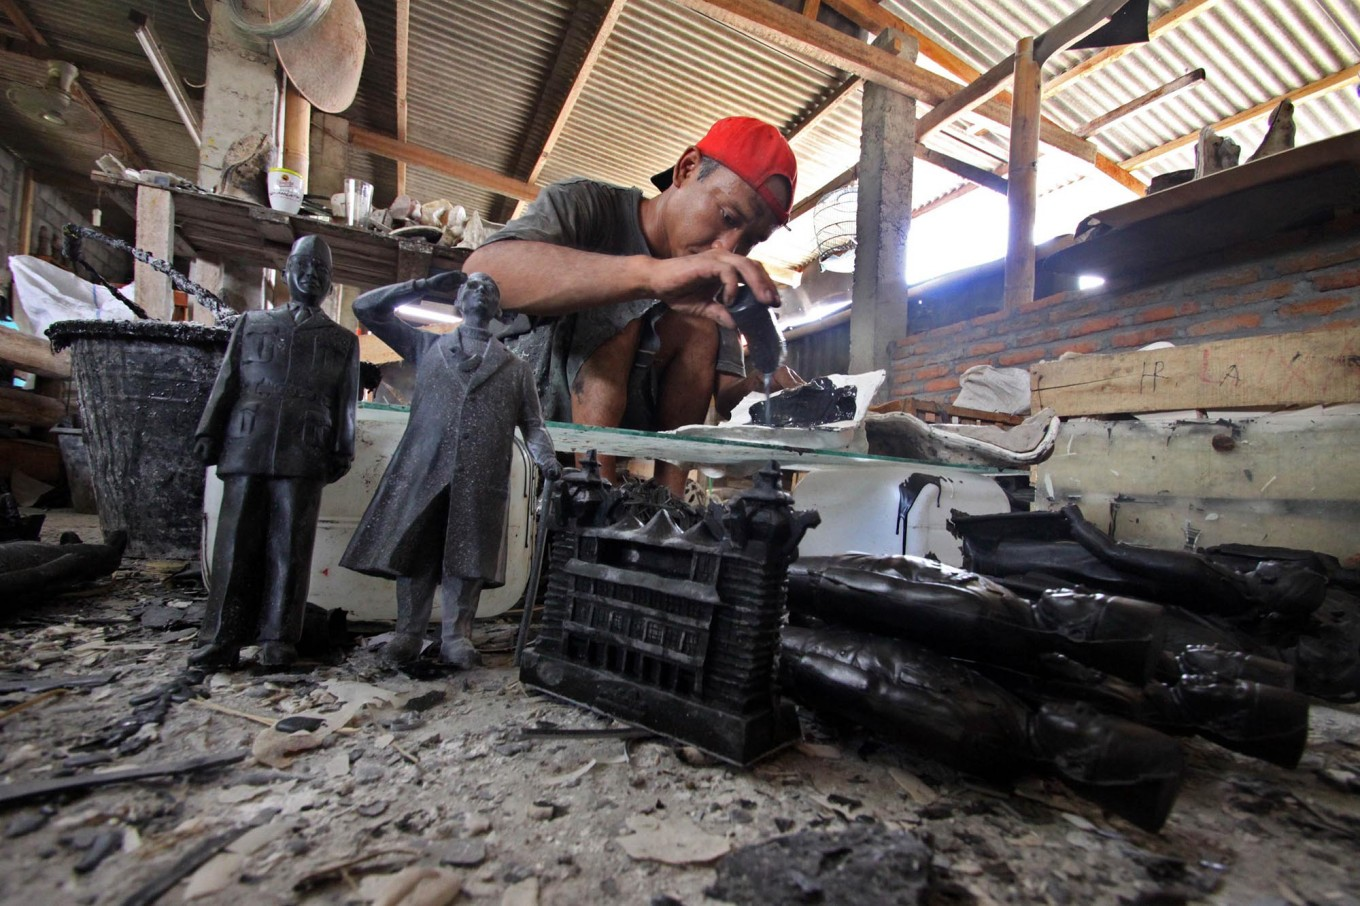 A man pours a resin liquid into a rubber sculpture mold in the Prambanan district, Yogyakarta, on Feb. 21. JP/Aditya Sagita